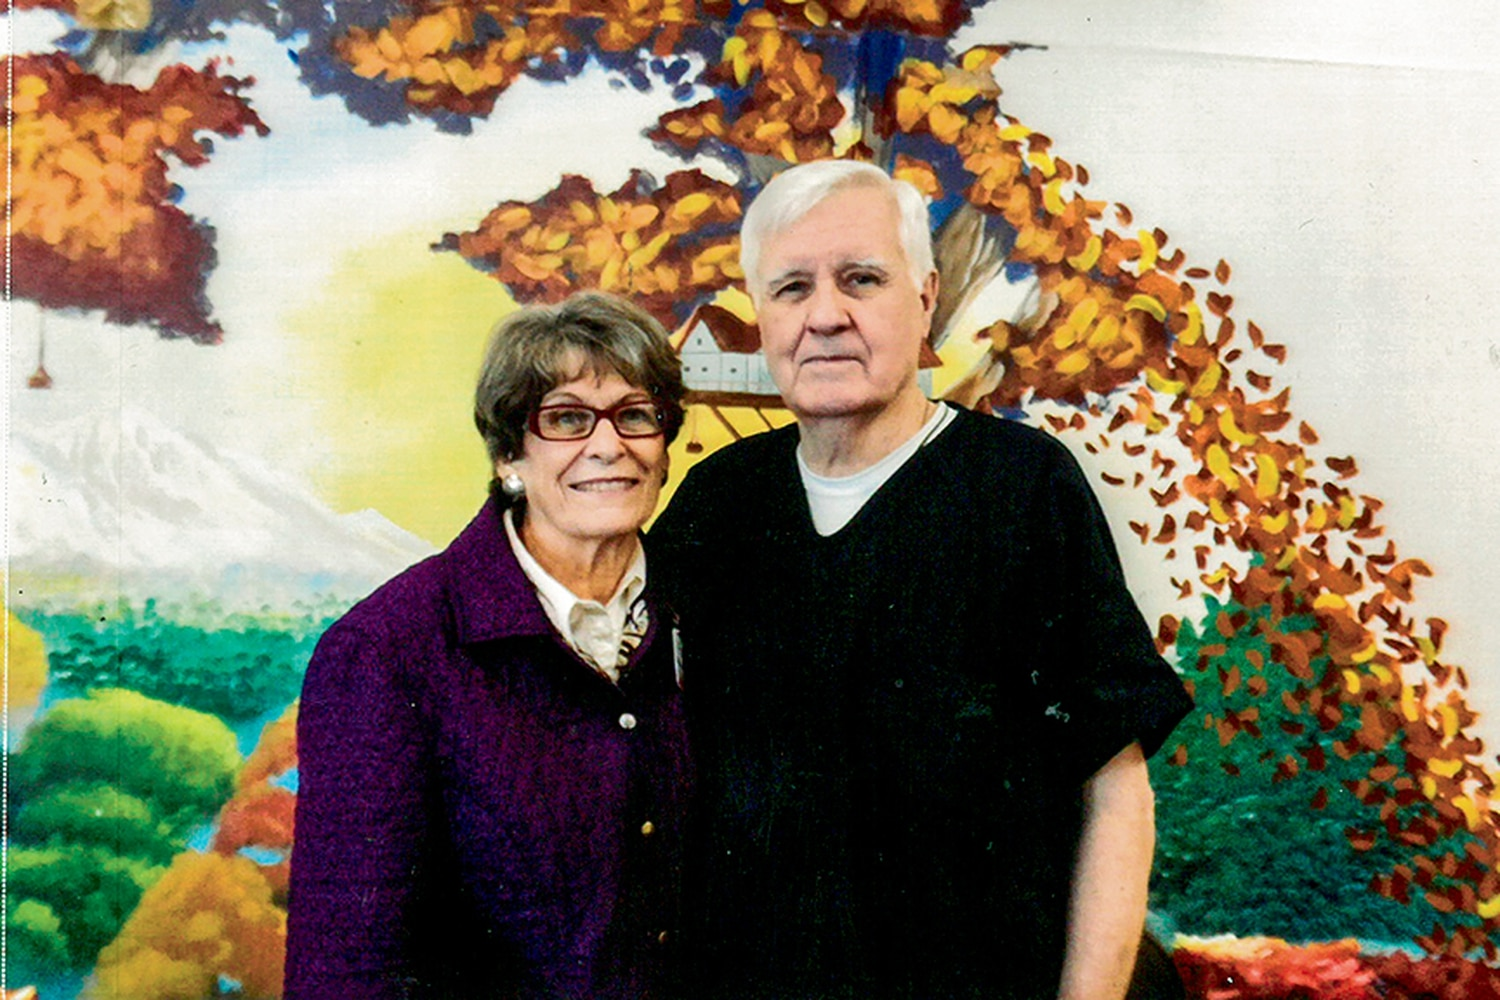 OC Fero and Carole Royal pose for a photograph during one of her visits to the Lea County Correctional Facility in Hobbs in 2016.